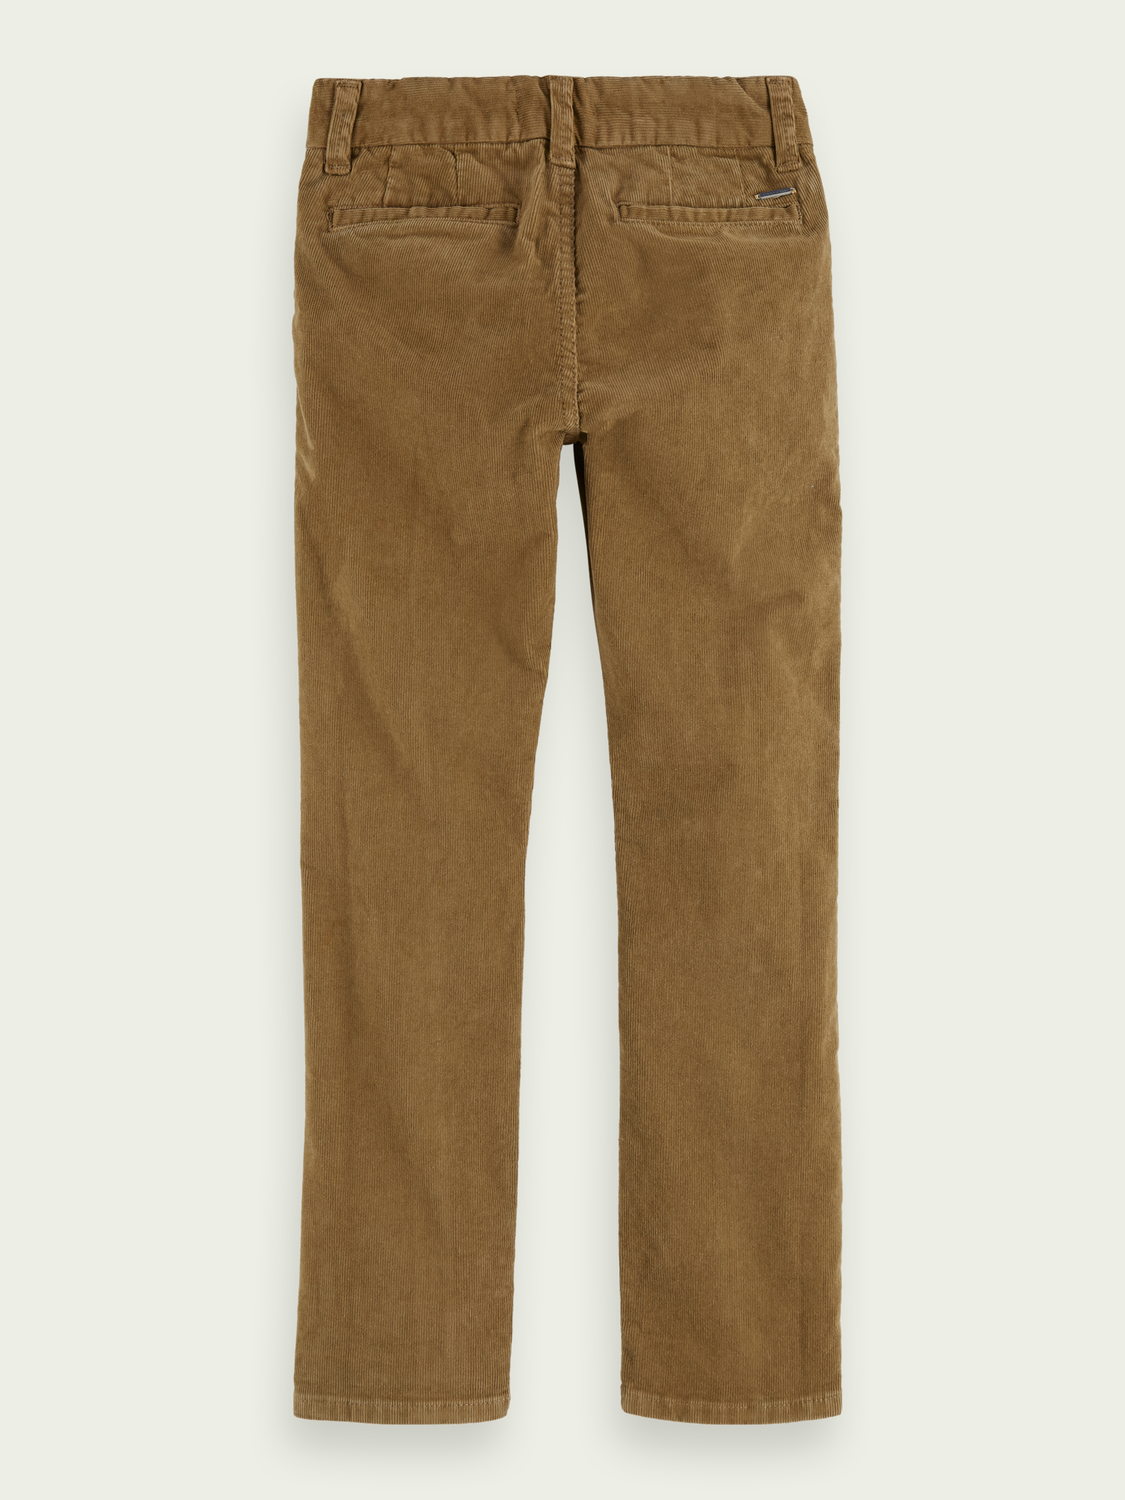 Boys Relaxed slim fit corduroy chino